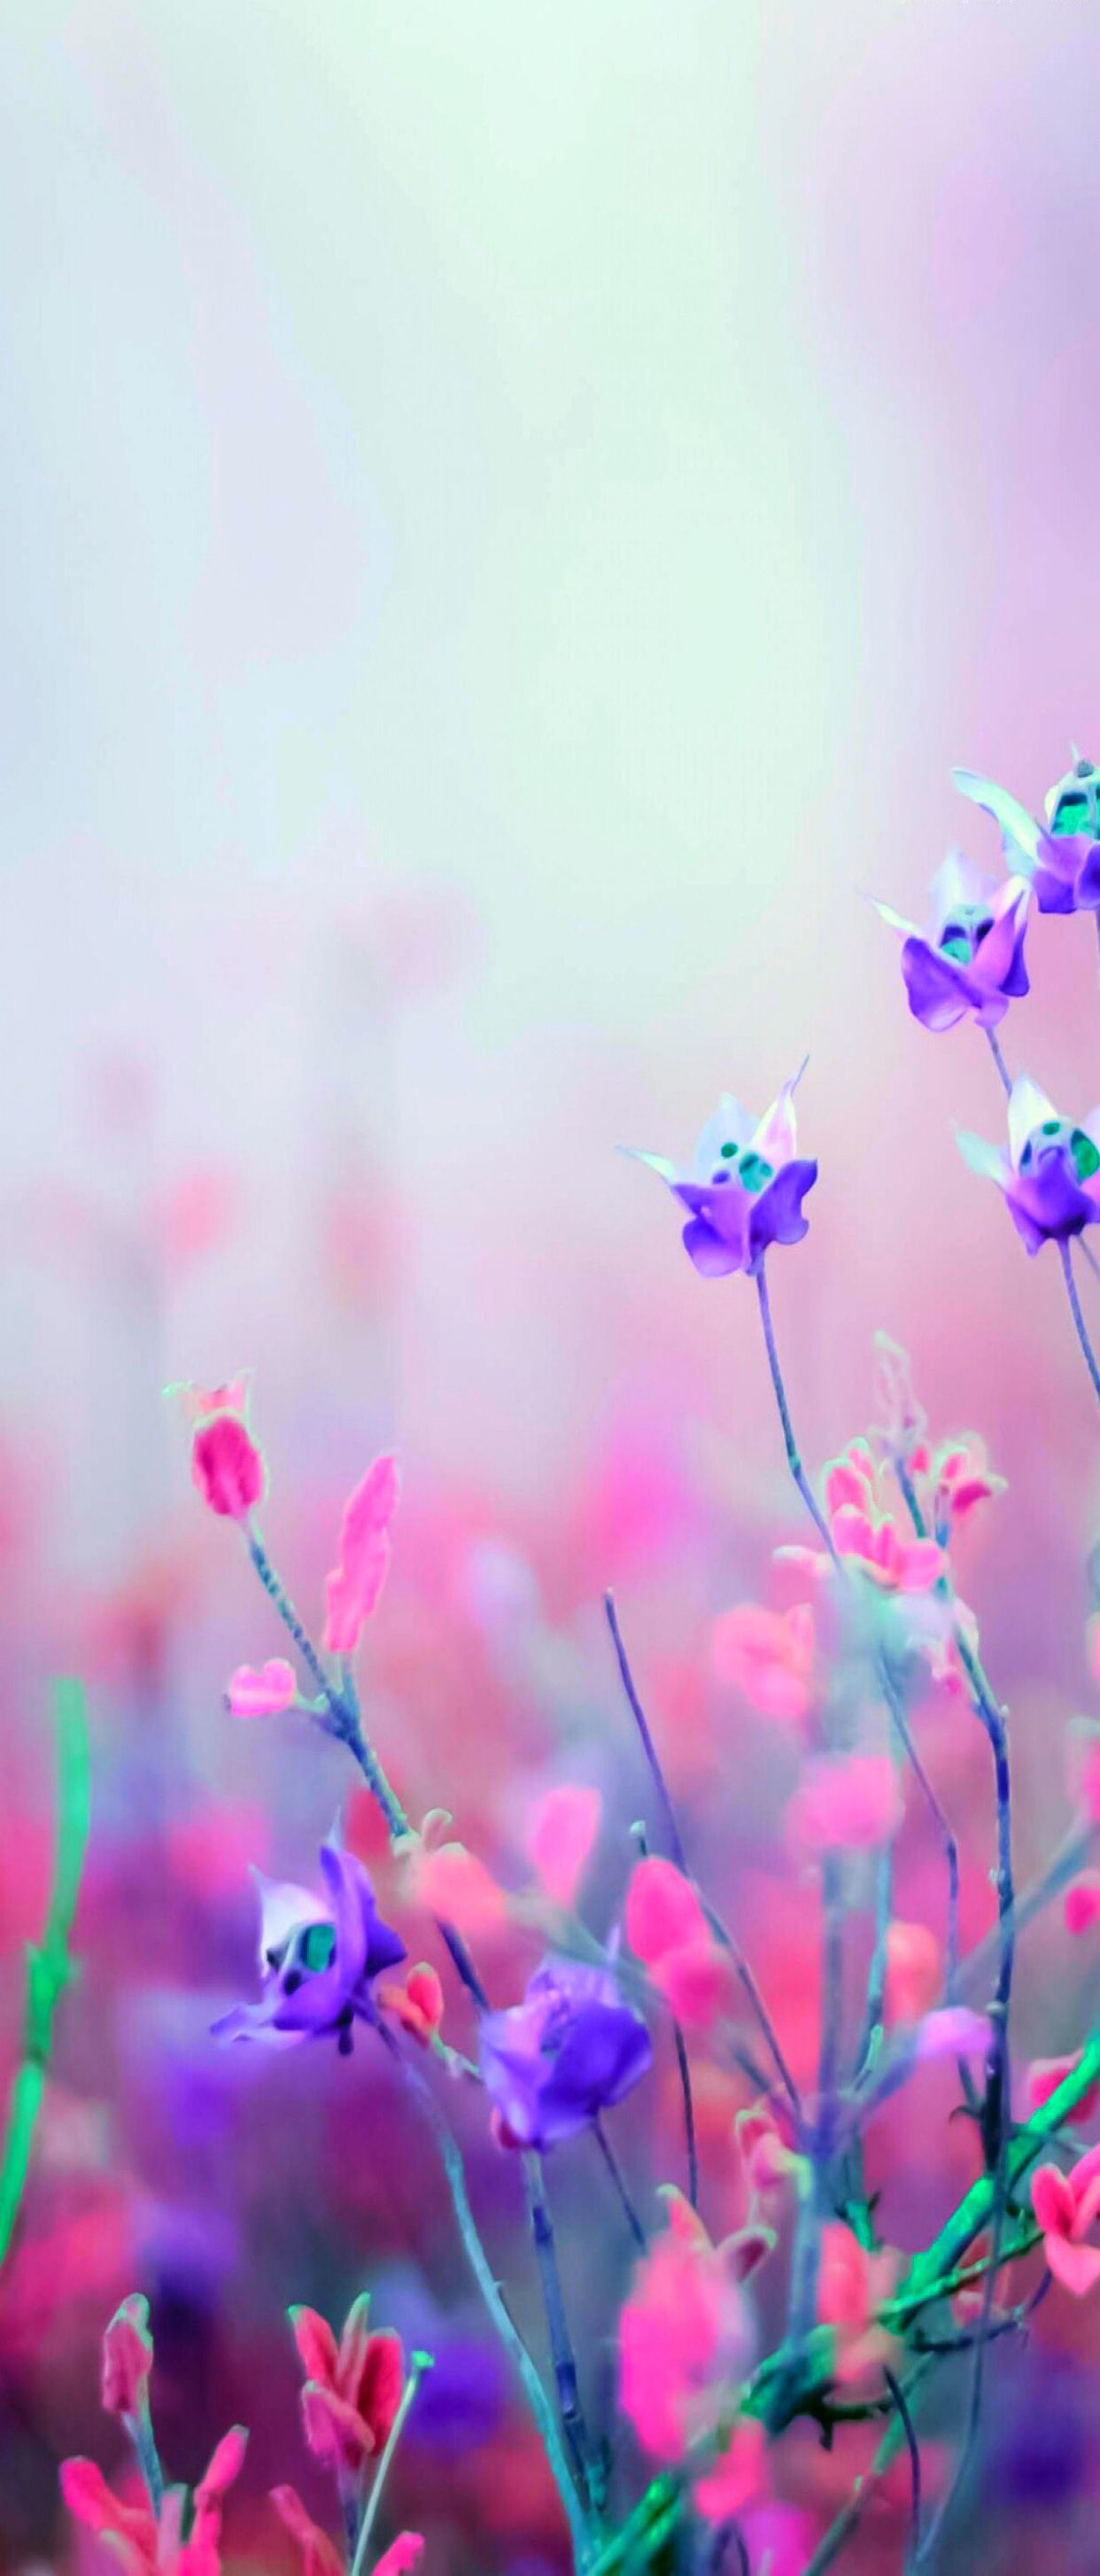 Res: 1242x2908, Floral, silver, pink, nature, violet, wallpaper, pattern, galaxy,